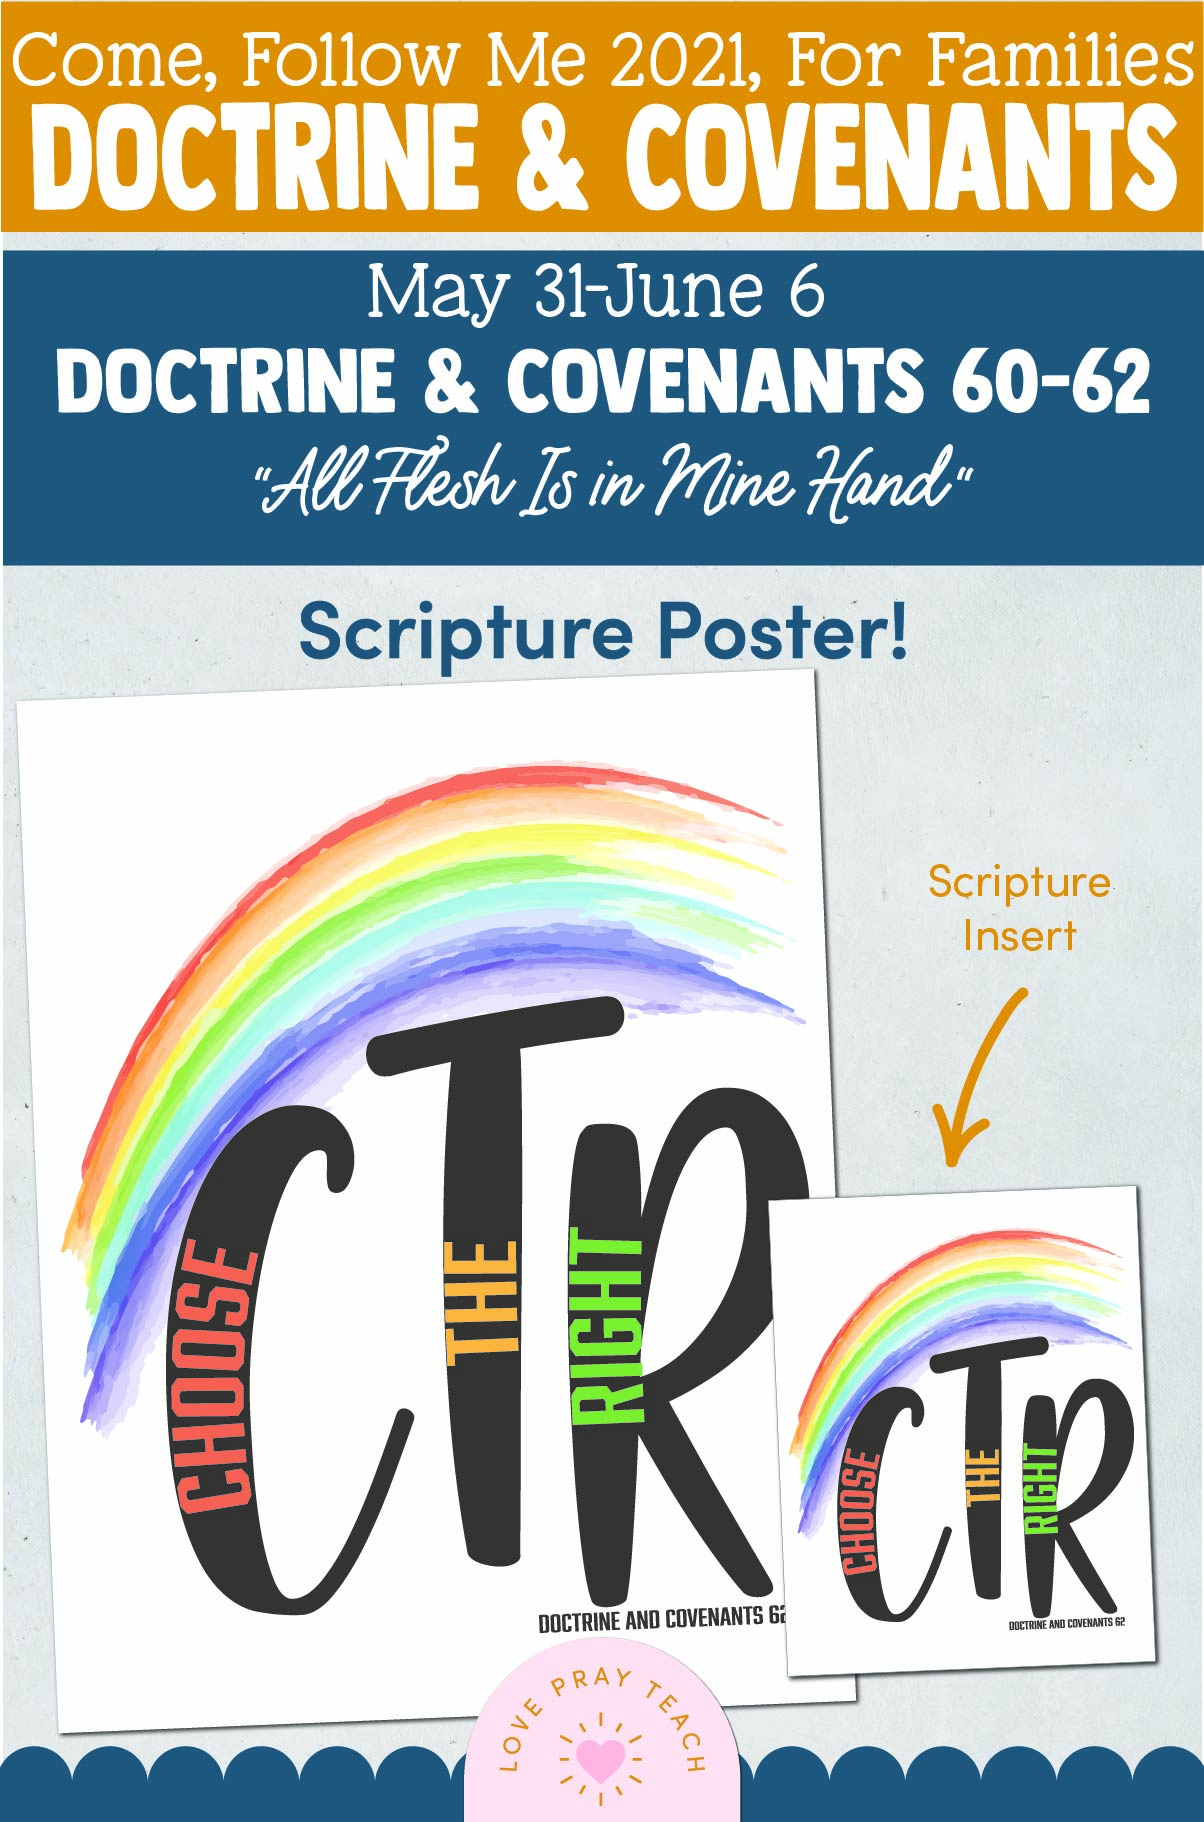 """Come, Follow Me—For Individuals and Families: Doctrine And Covenants 2021, June Week 1 Doctrine and Covenants 60-62: May 31-June 6, """"All Flesh Is in Mine Hand"""""""